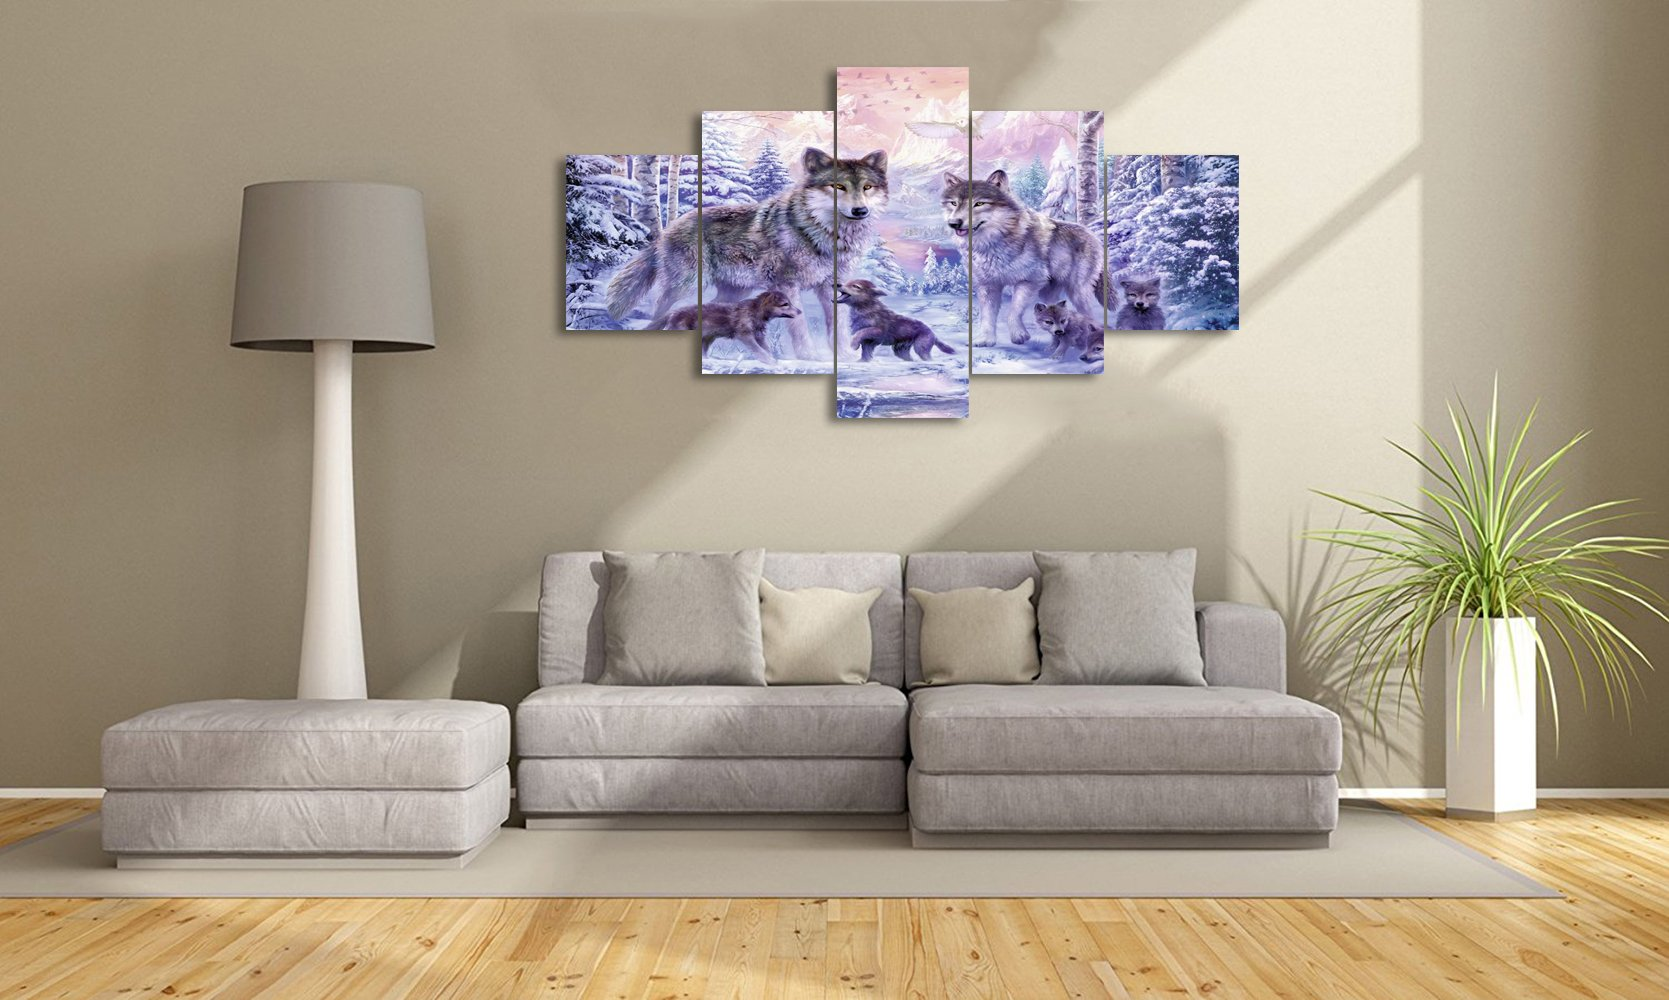 Yatsen Bridge Modern Animals Painting On Canvas Wall Art Prints Wolves In The Snow Pictures Artwork for Living room Bedroom Stretched By Wooden Frame Ready To Hang For House (60x32inch) by Yatsen Bridge (Image #3)